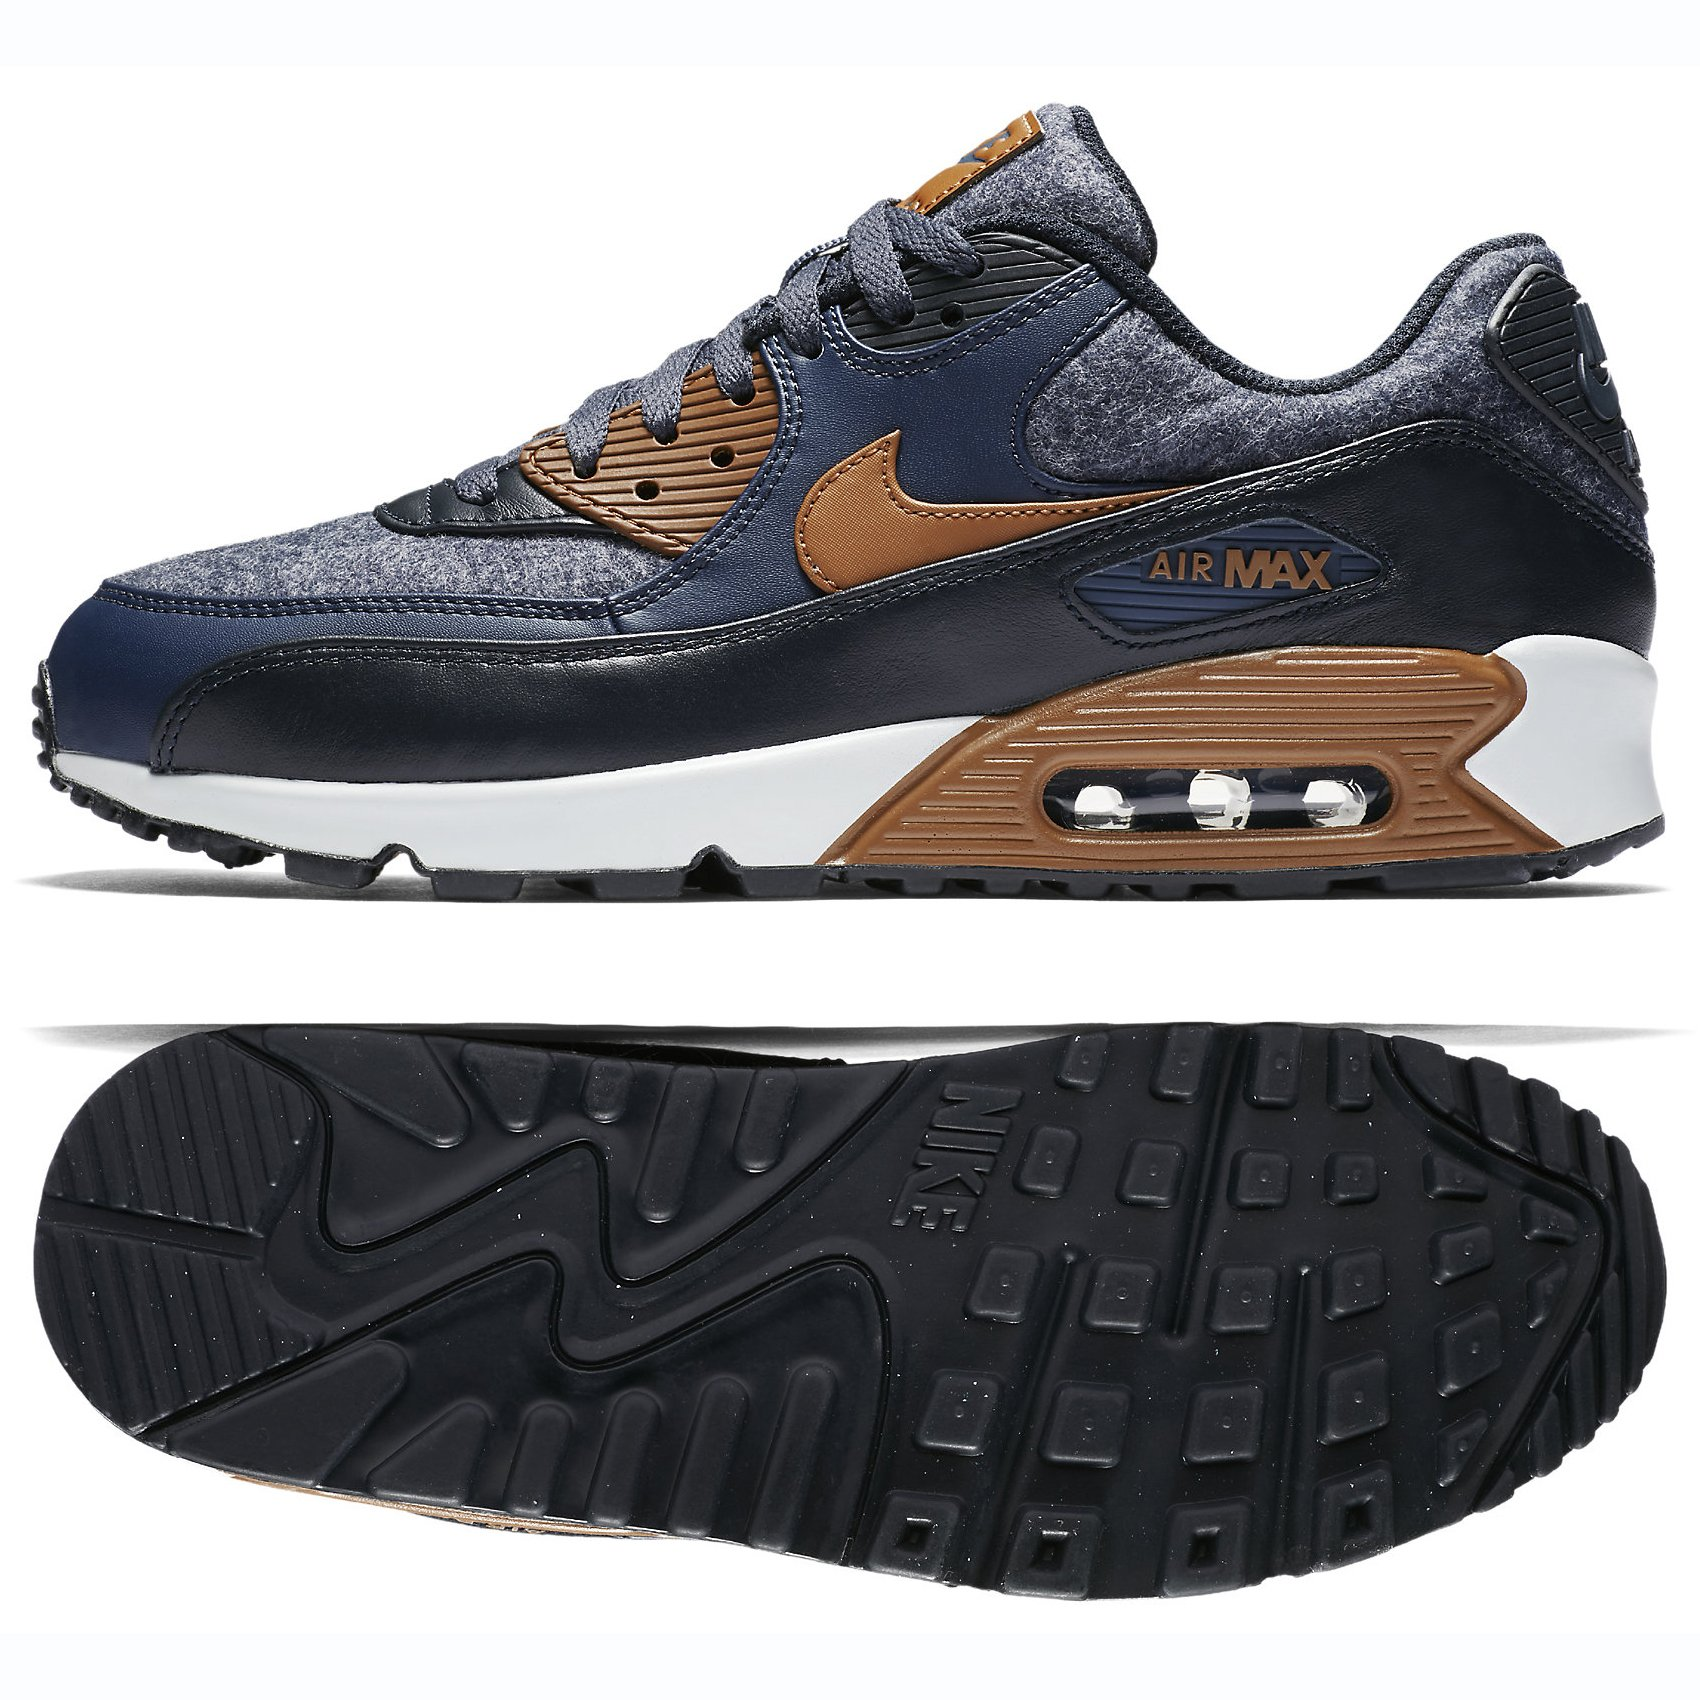 new concept 221c2 7f807 Galleon - Nike Mens Air Max 90 Premium Wool Pack Shoes Thunder Blue Ale  Brown Obsidian 700155-404 Size 8.5